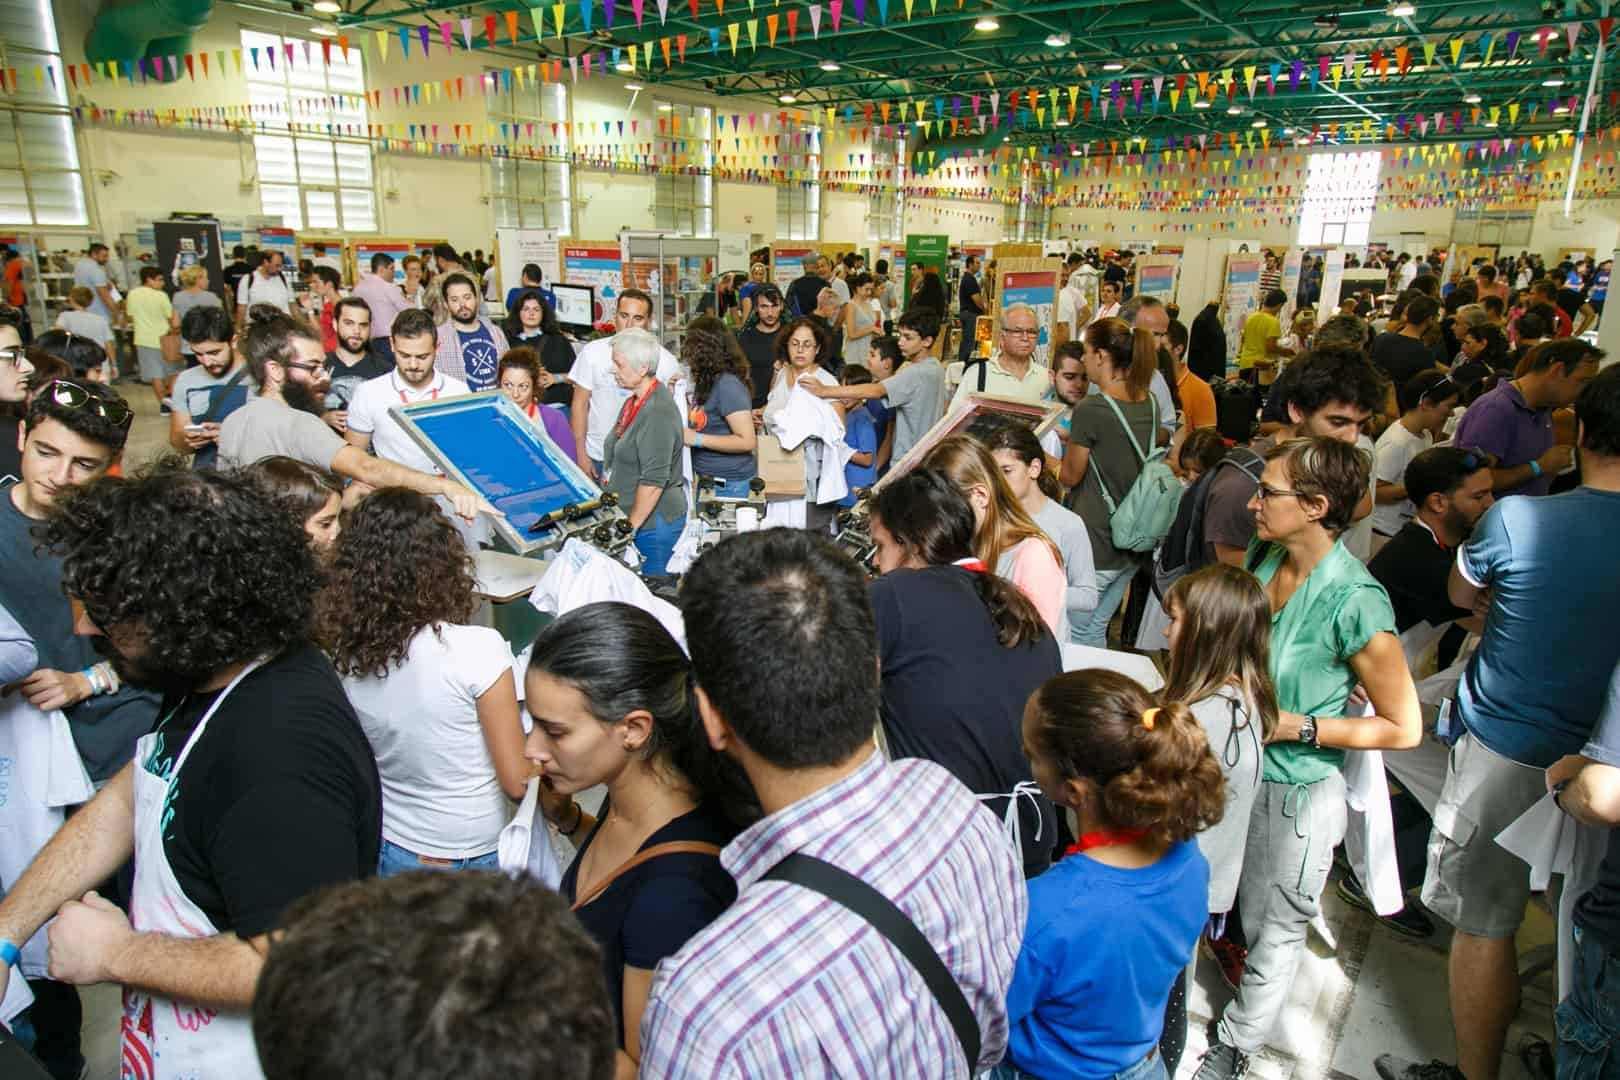 Athens Mini Maker Faire 2017 - Έλα να δεις, να μάθεις, να φτιάξεις! 3